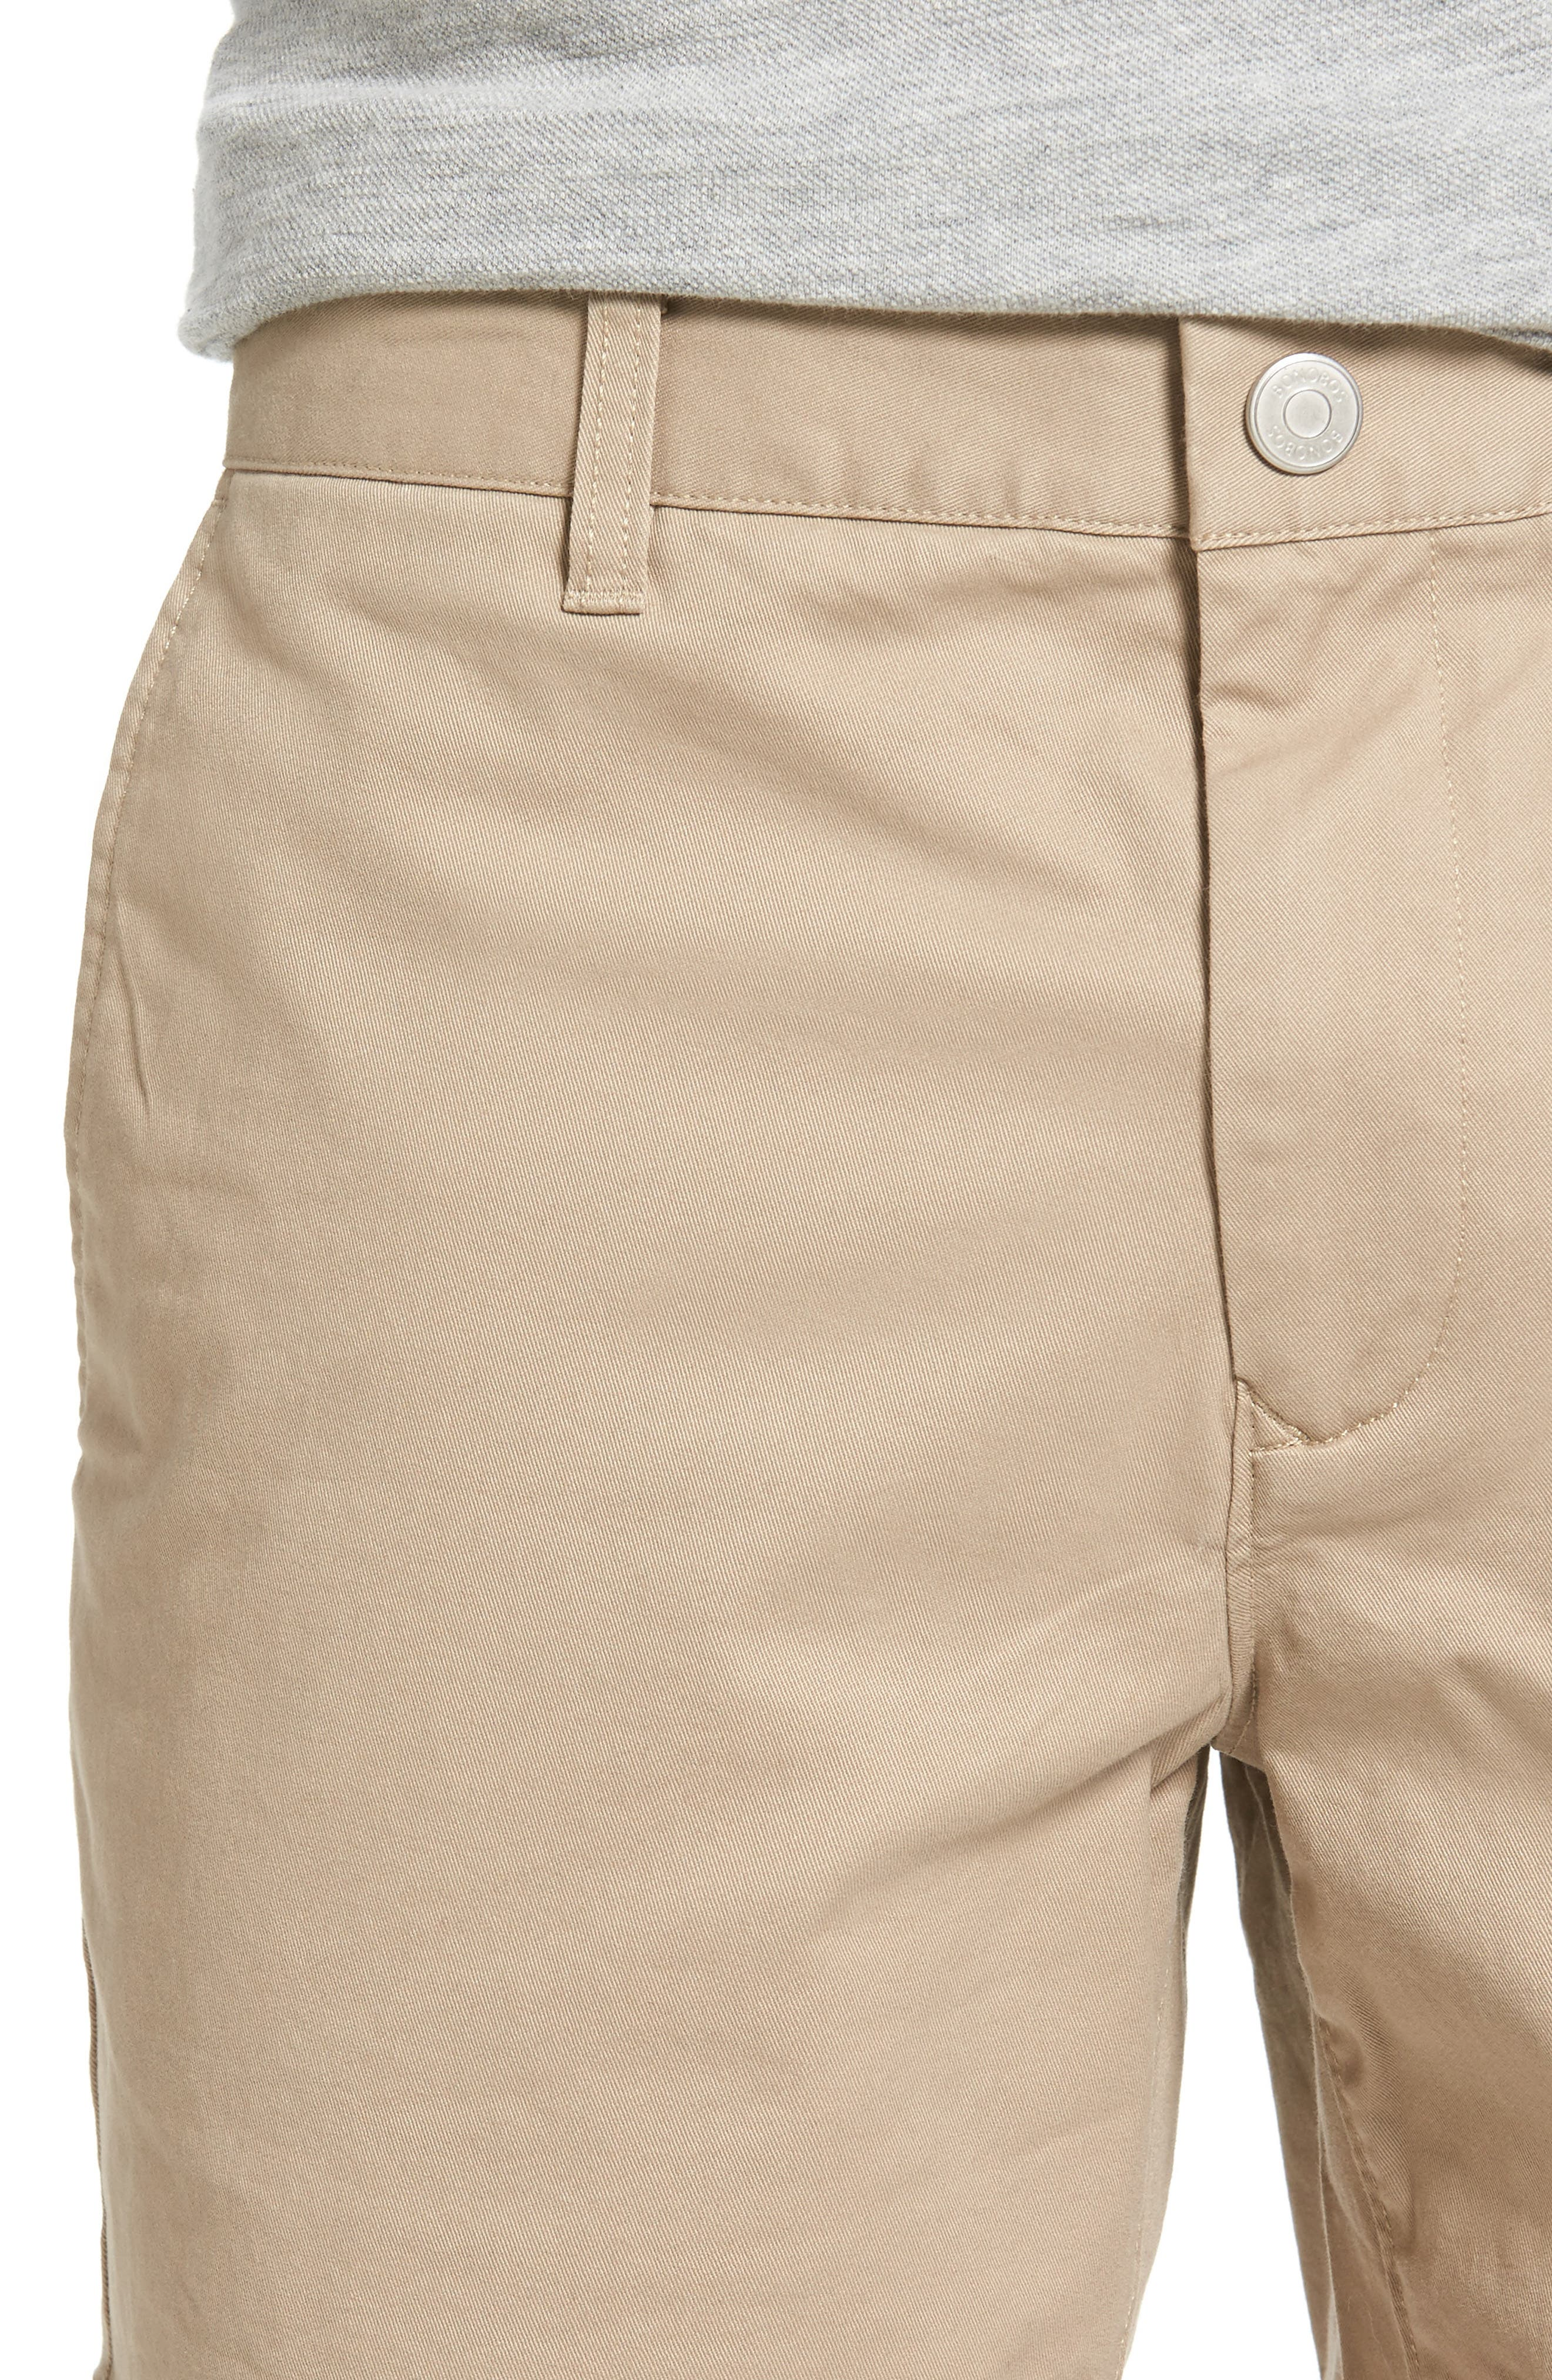 Stretch Washed Chino 5-Inch Shorts,                             Alternate thumbnail 106, color,